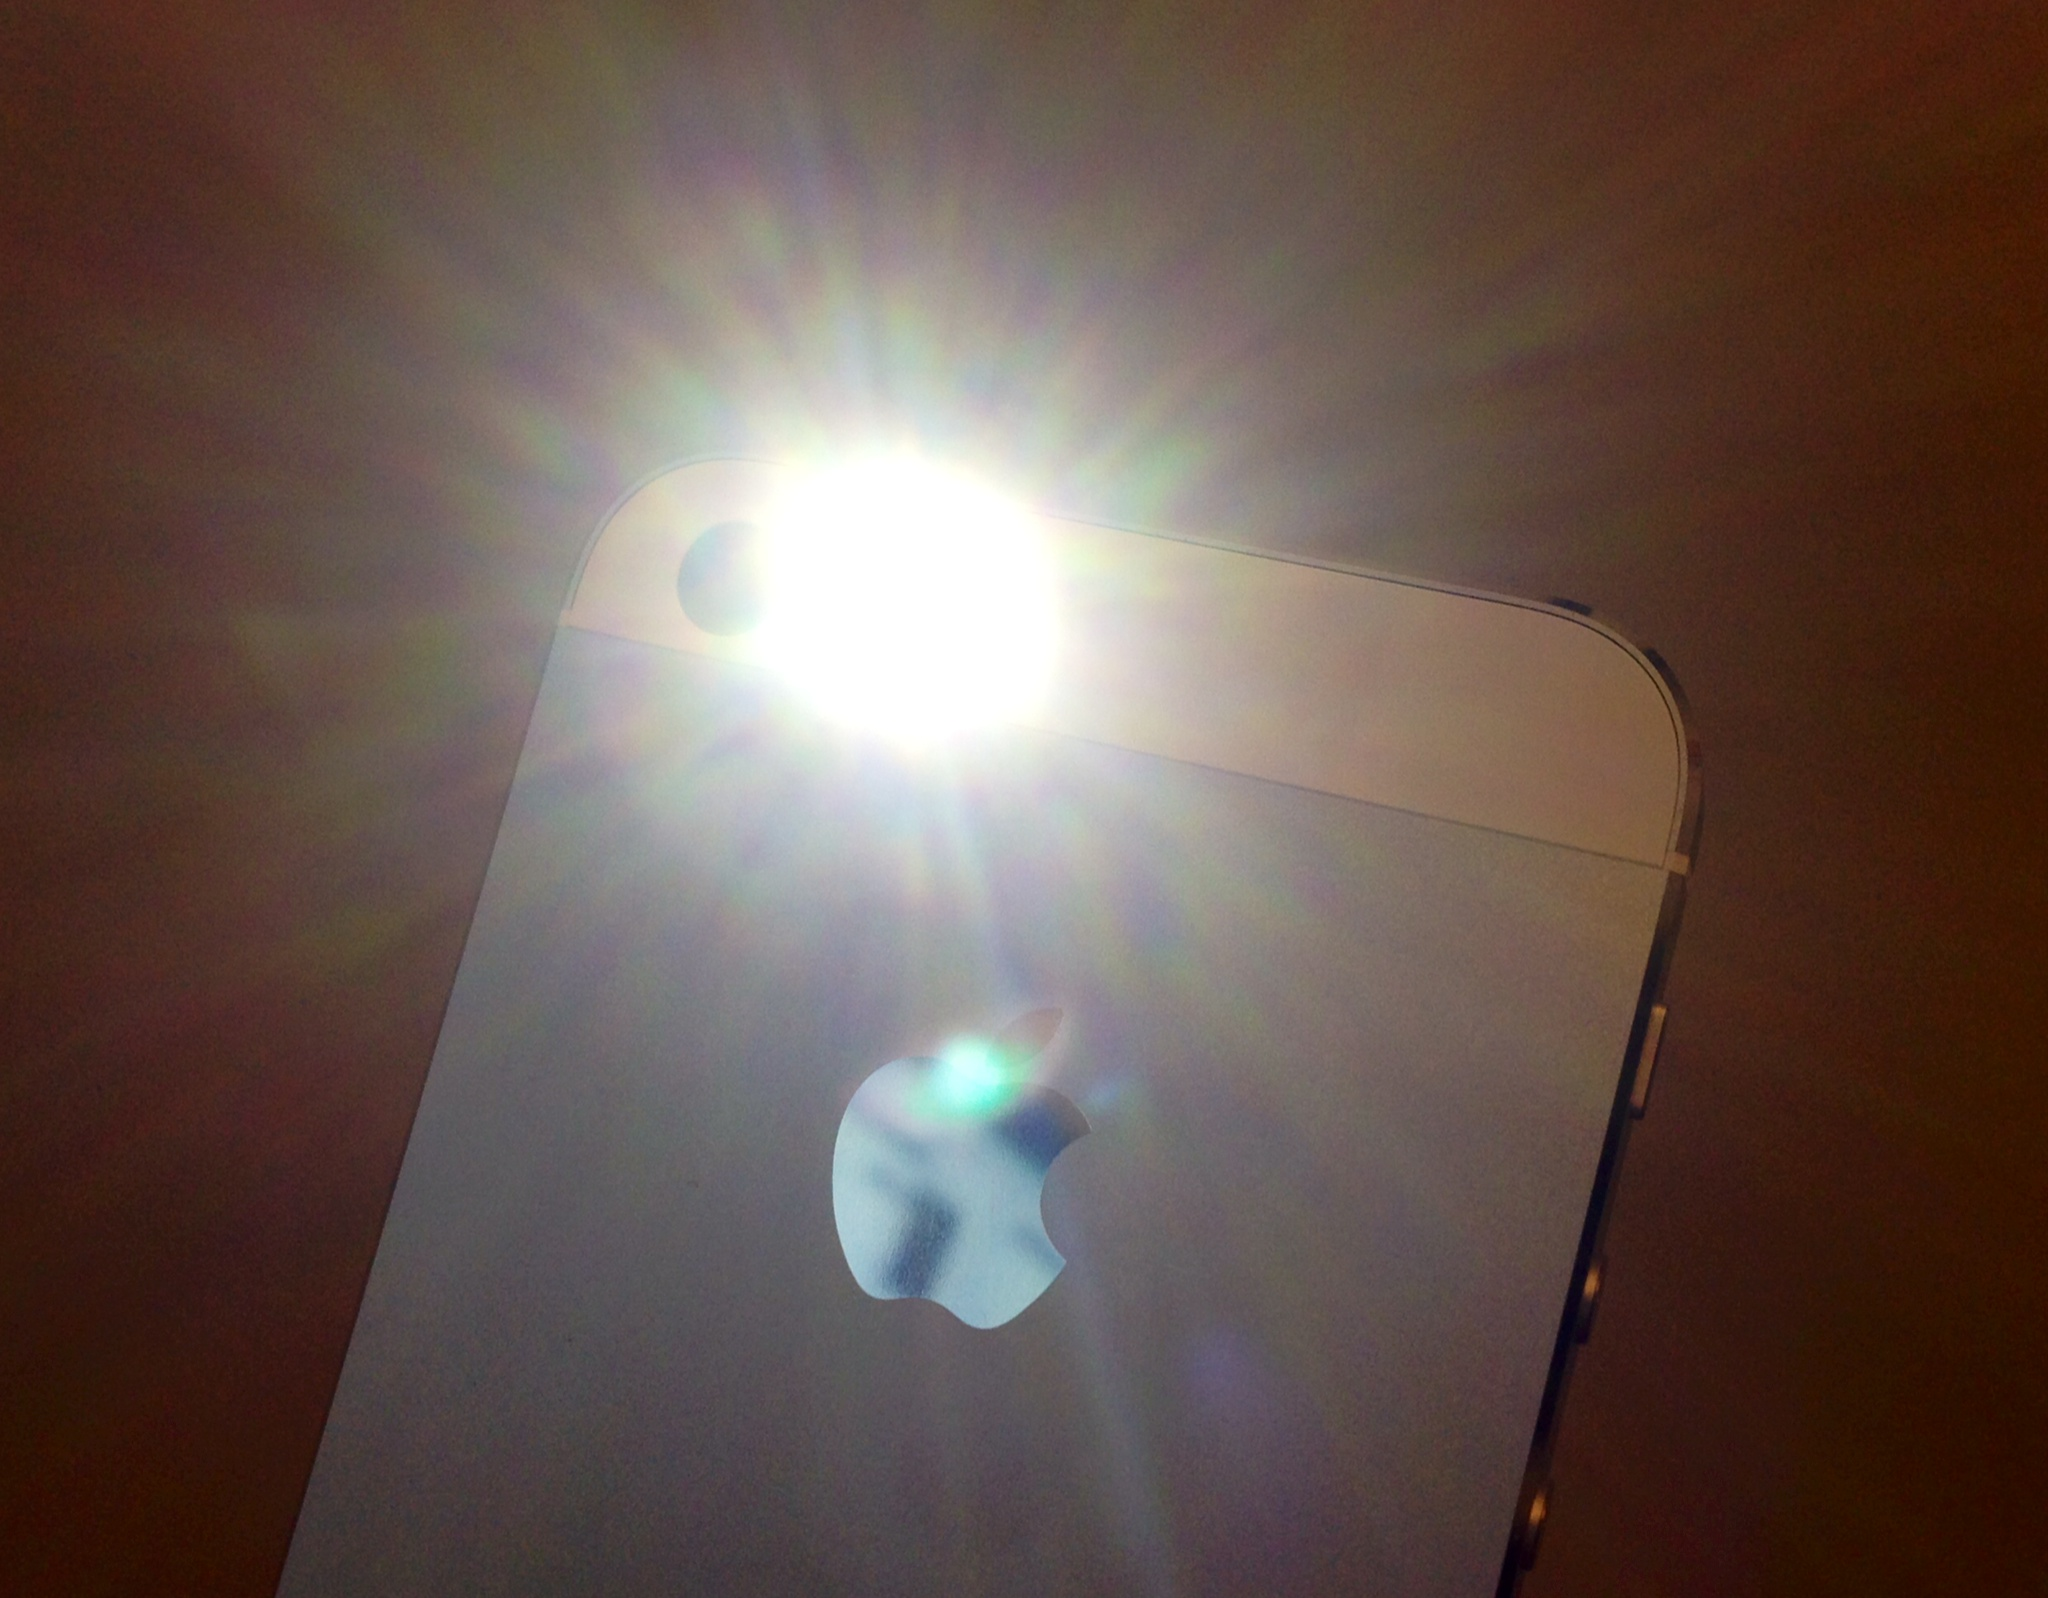 how to turn off call flash on iphone 6